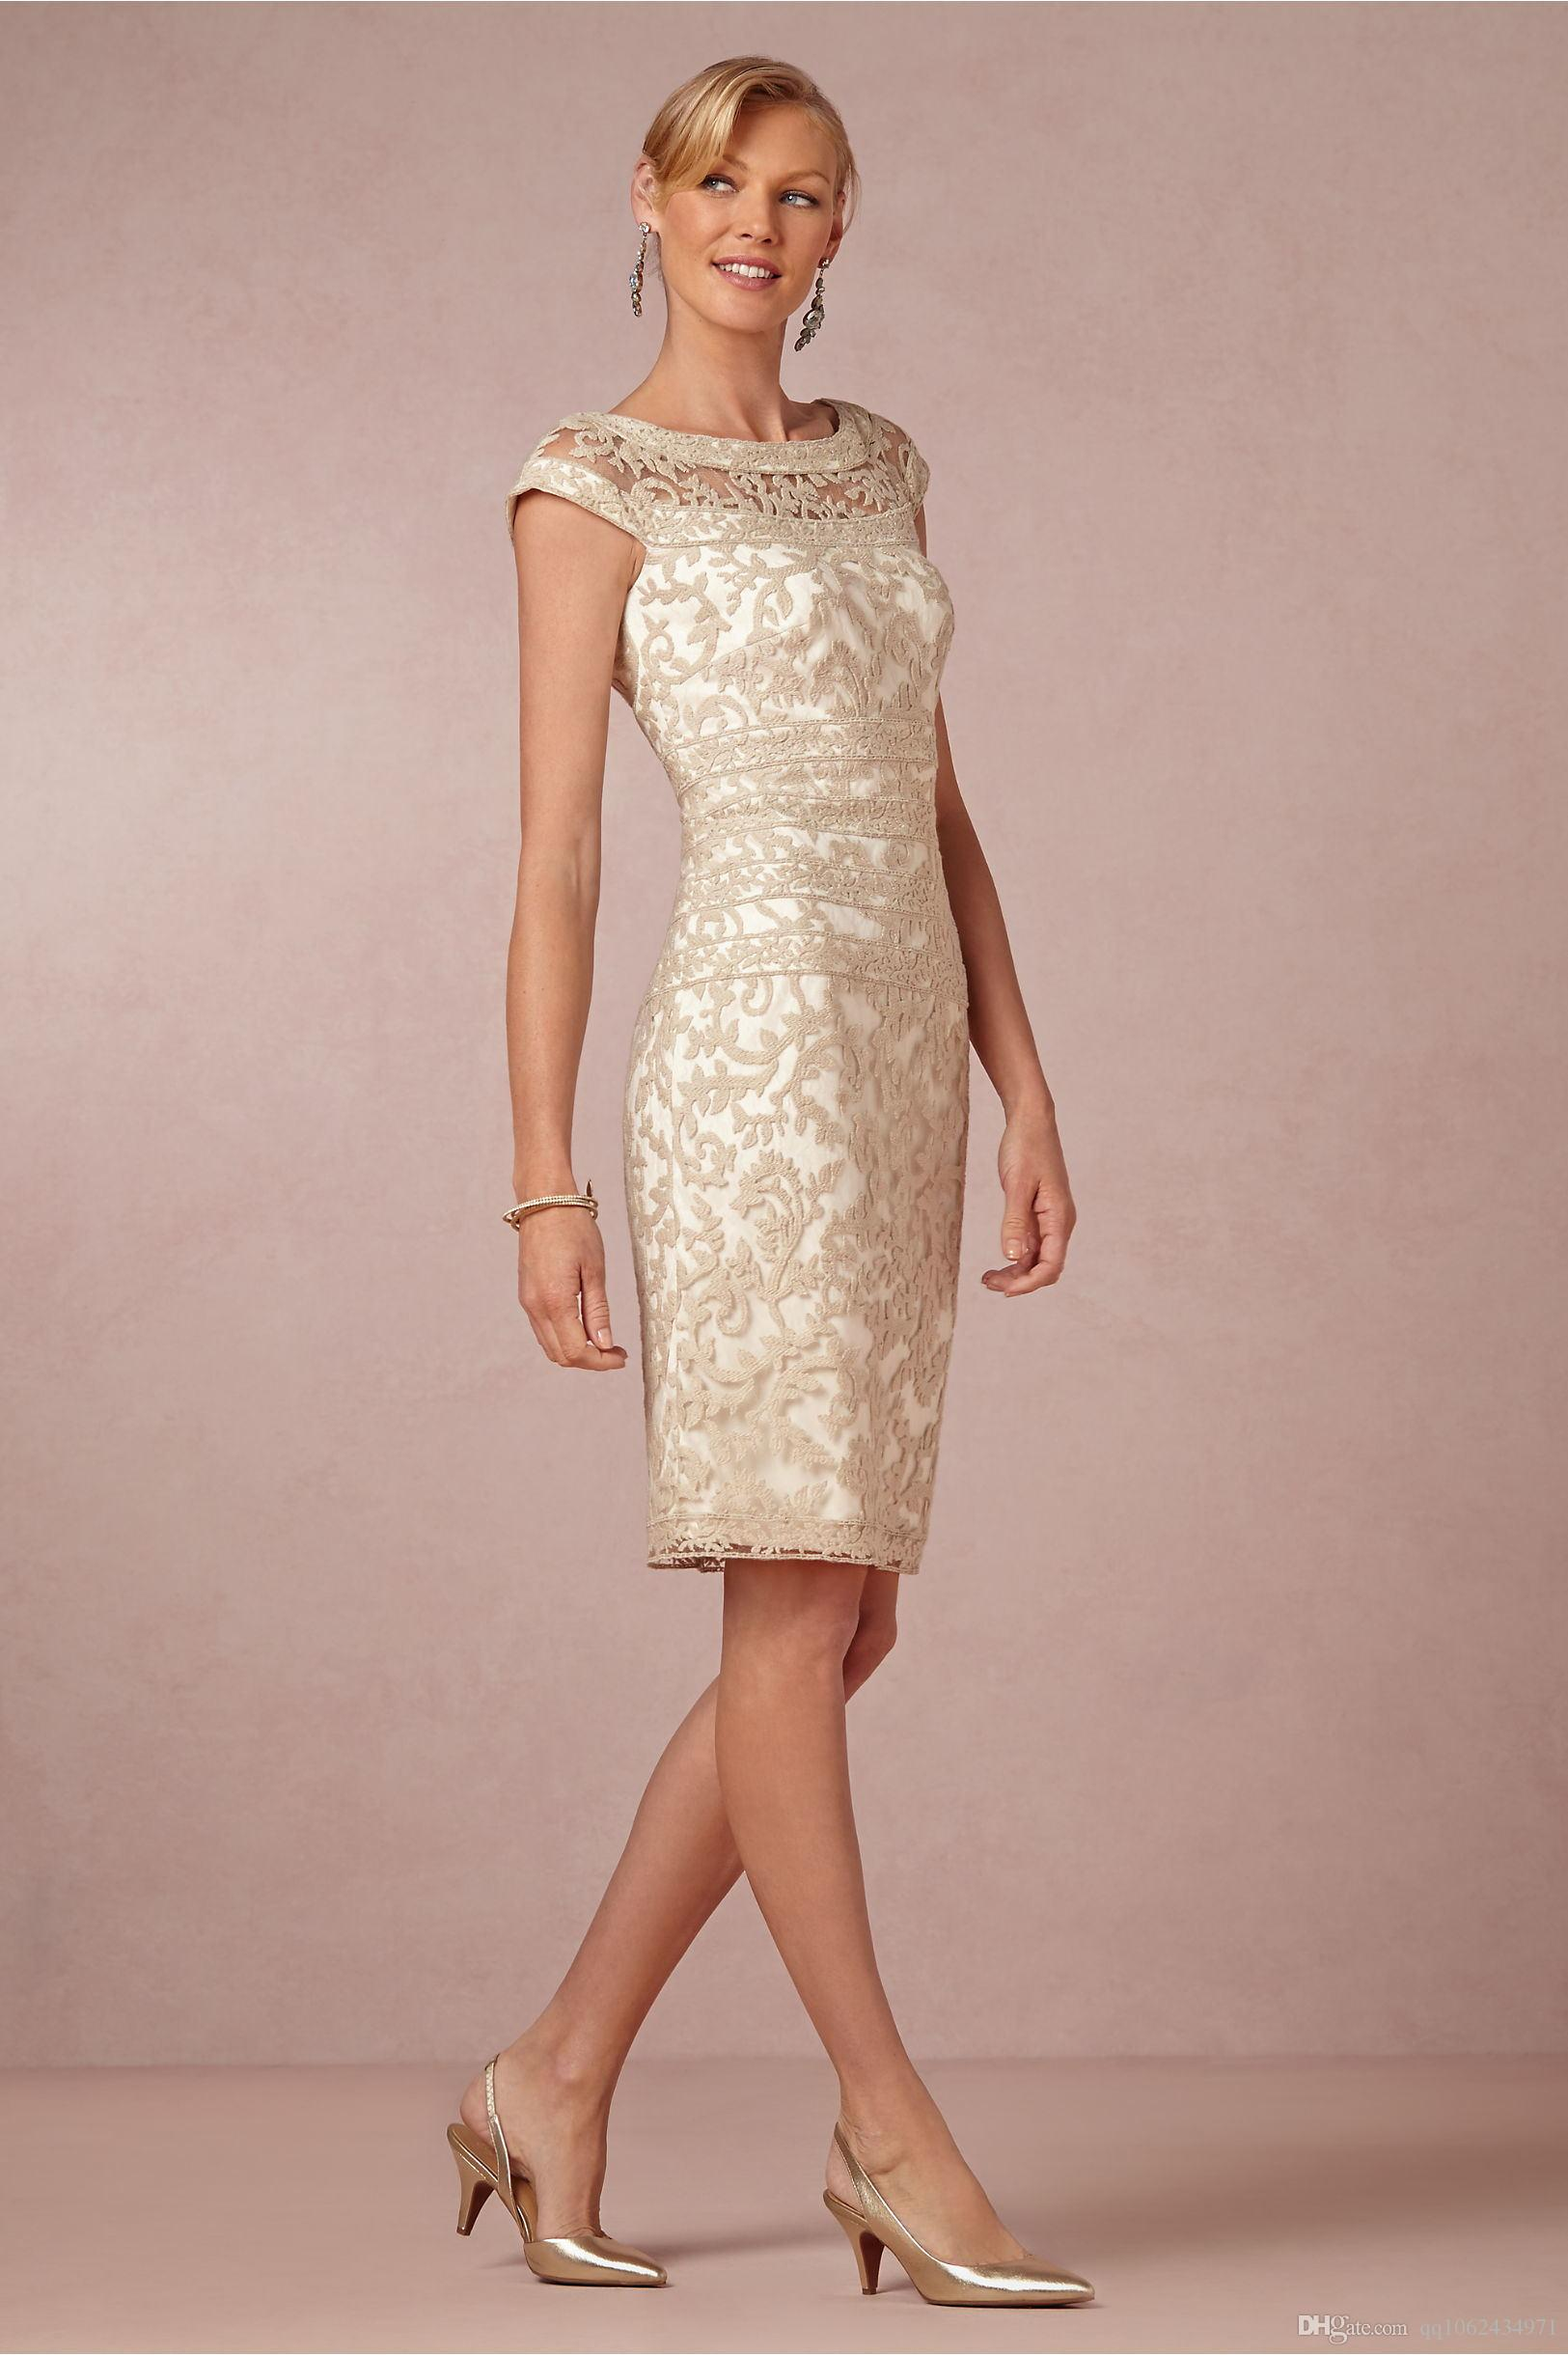 Net Backless Lace Veil Cream Colored Hollow Out Dress Show Thin ...